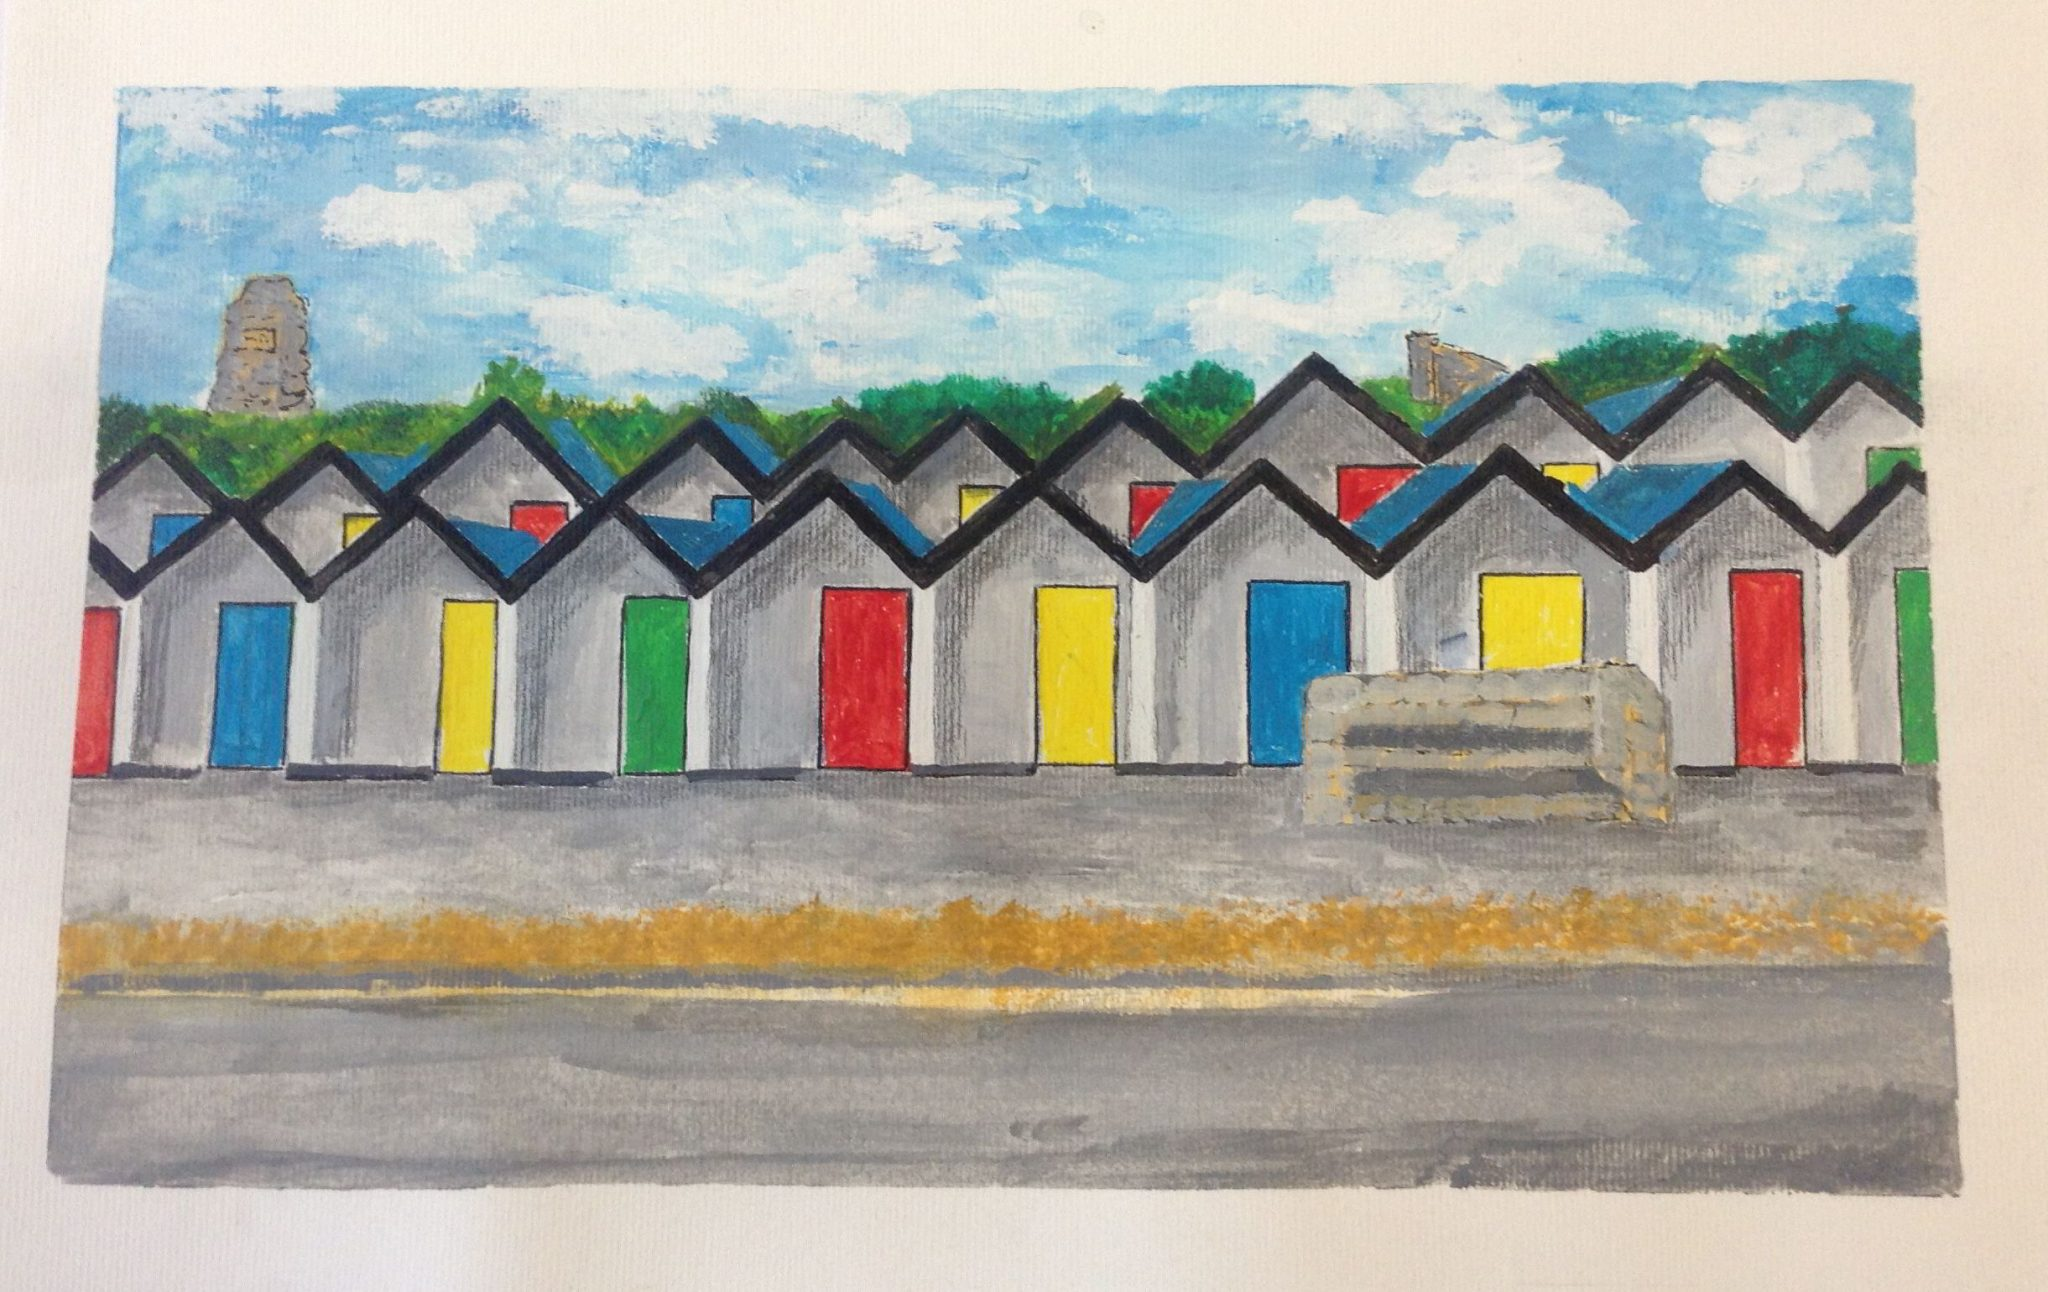 A watercolour painting of beach huts with colourful doors